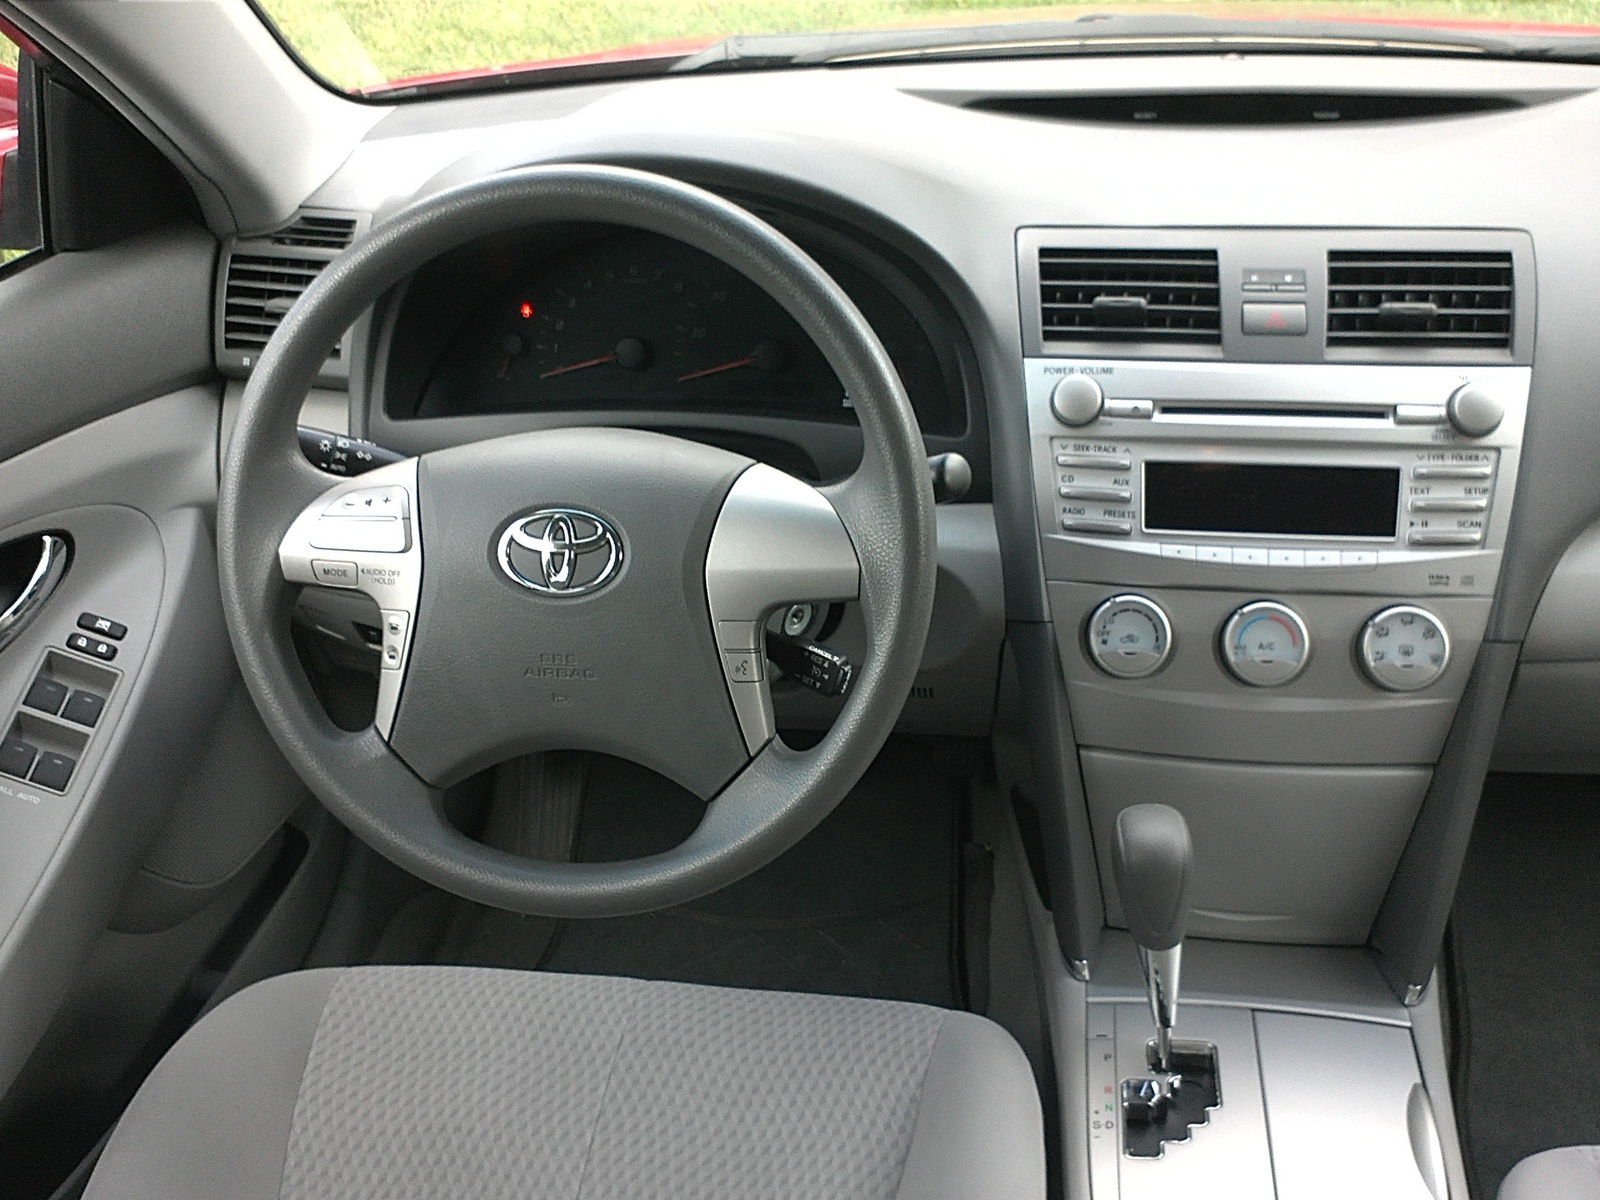 2011 Toyota Camry - Interior Pictures